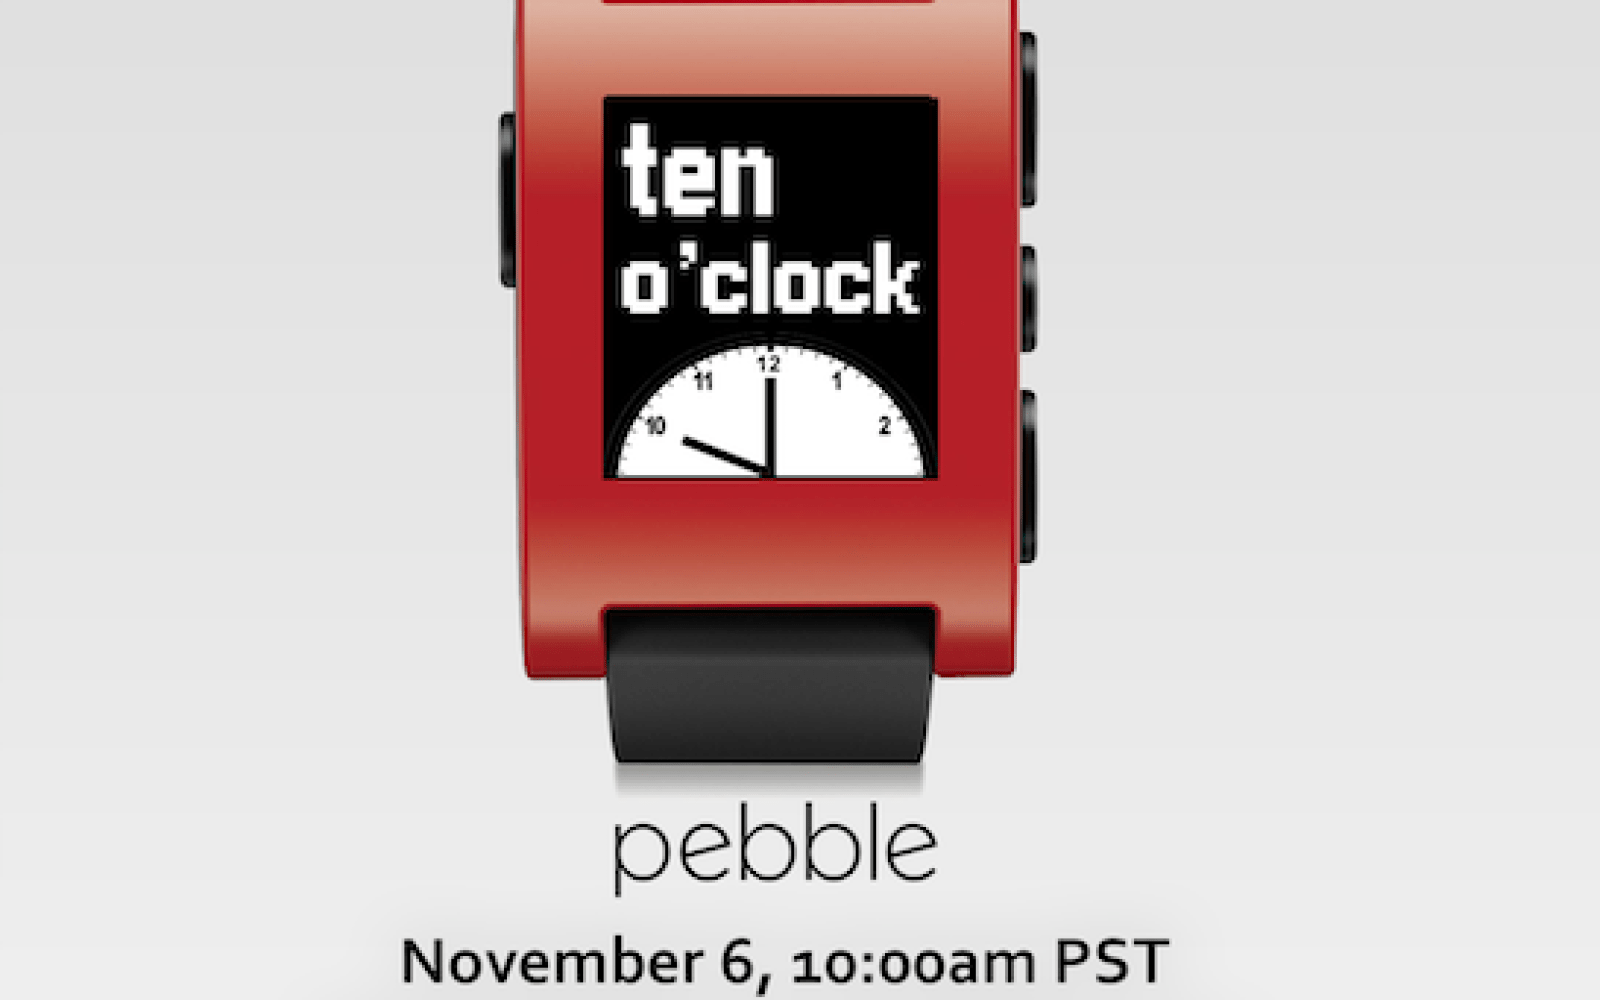 Pebble to announce new software features on Nov. 6